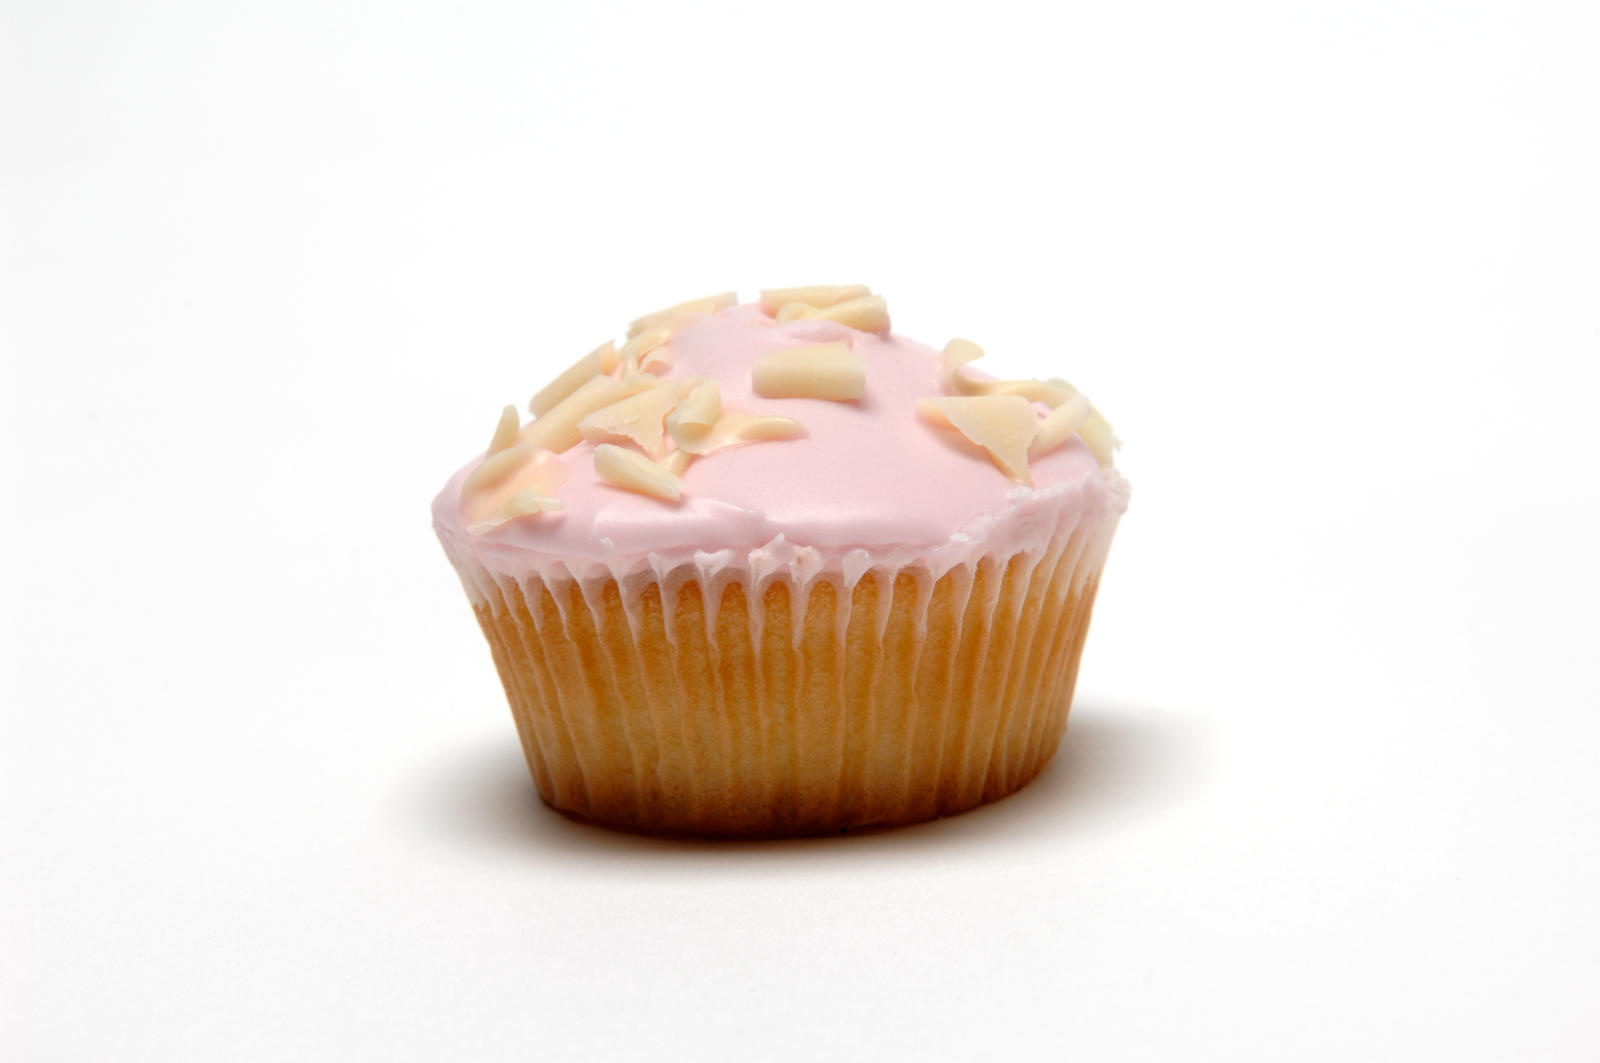 Single pink-iced cupcake covered in white chocolate curls